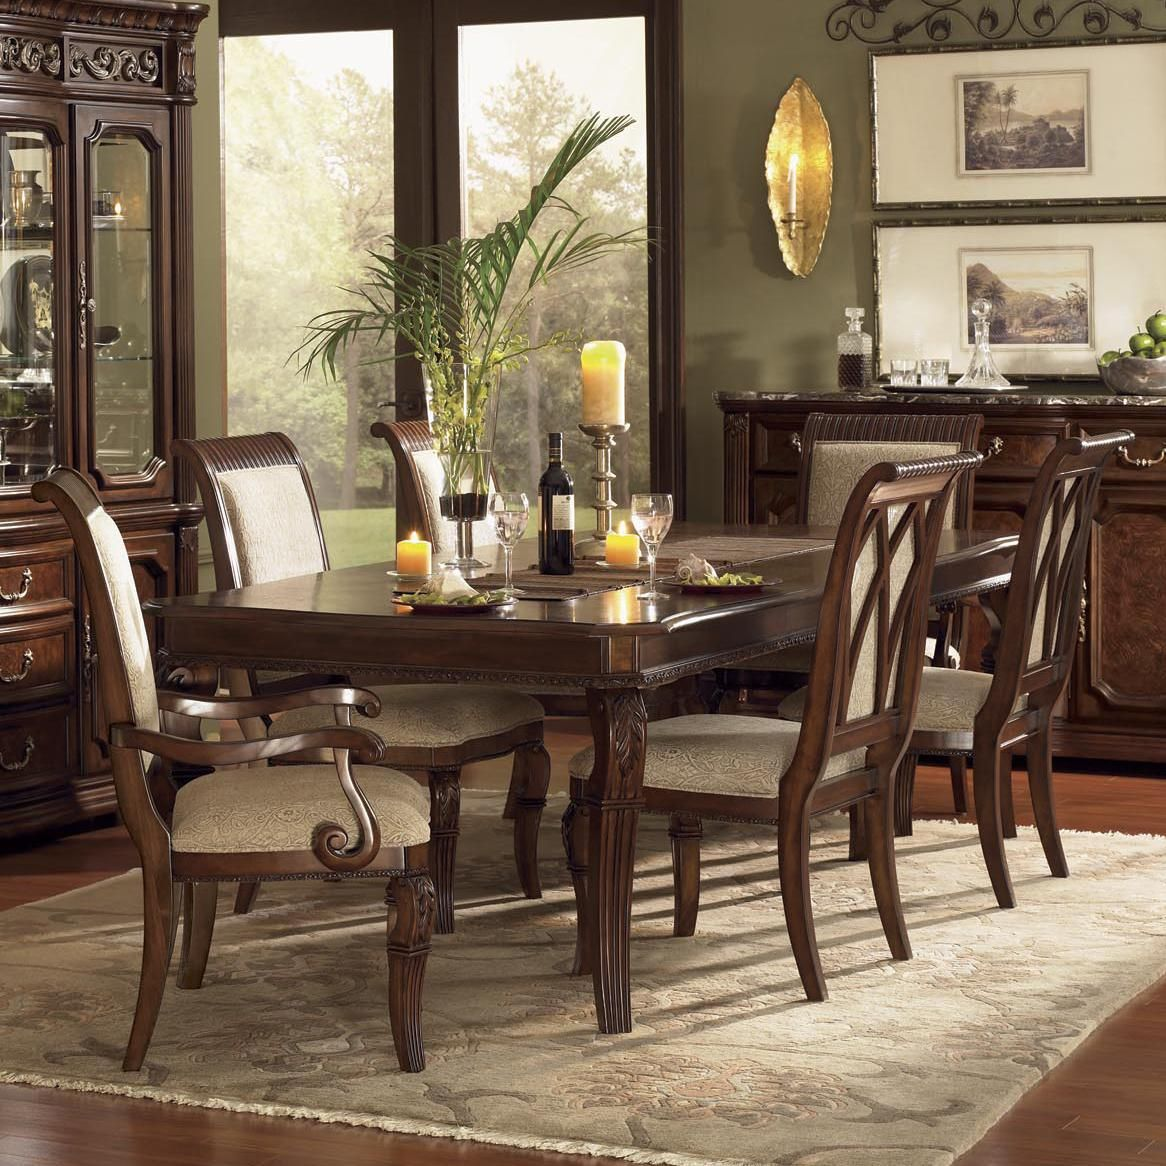 Granada Dining Room Set with Upholstered Chairs by Wynwood ...